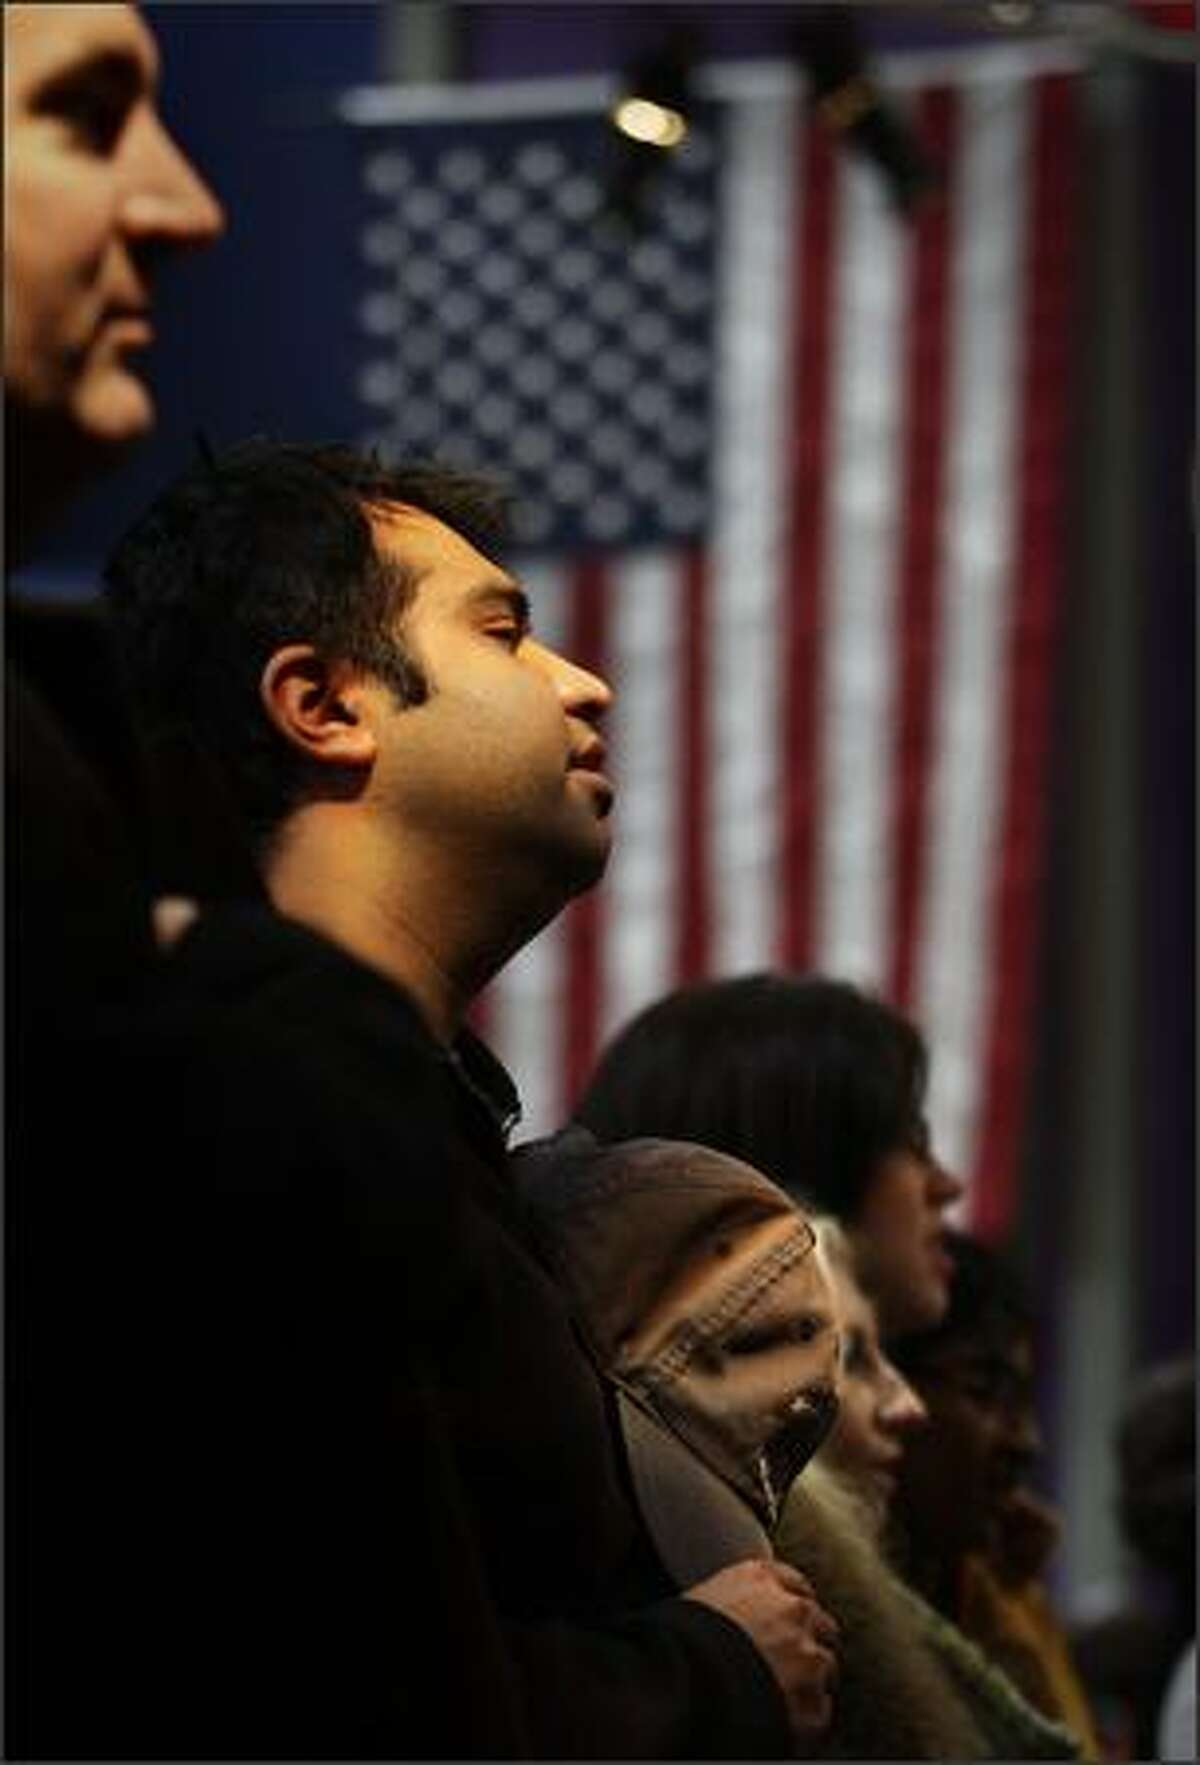 Rashi Batra and others gather at Center House at the Seattle Center listen to the national anthem during a live telecast of Barack Obama's inauguration ceremony.